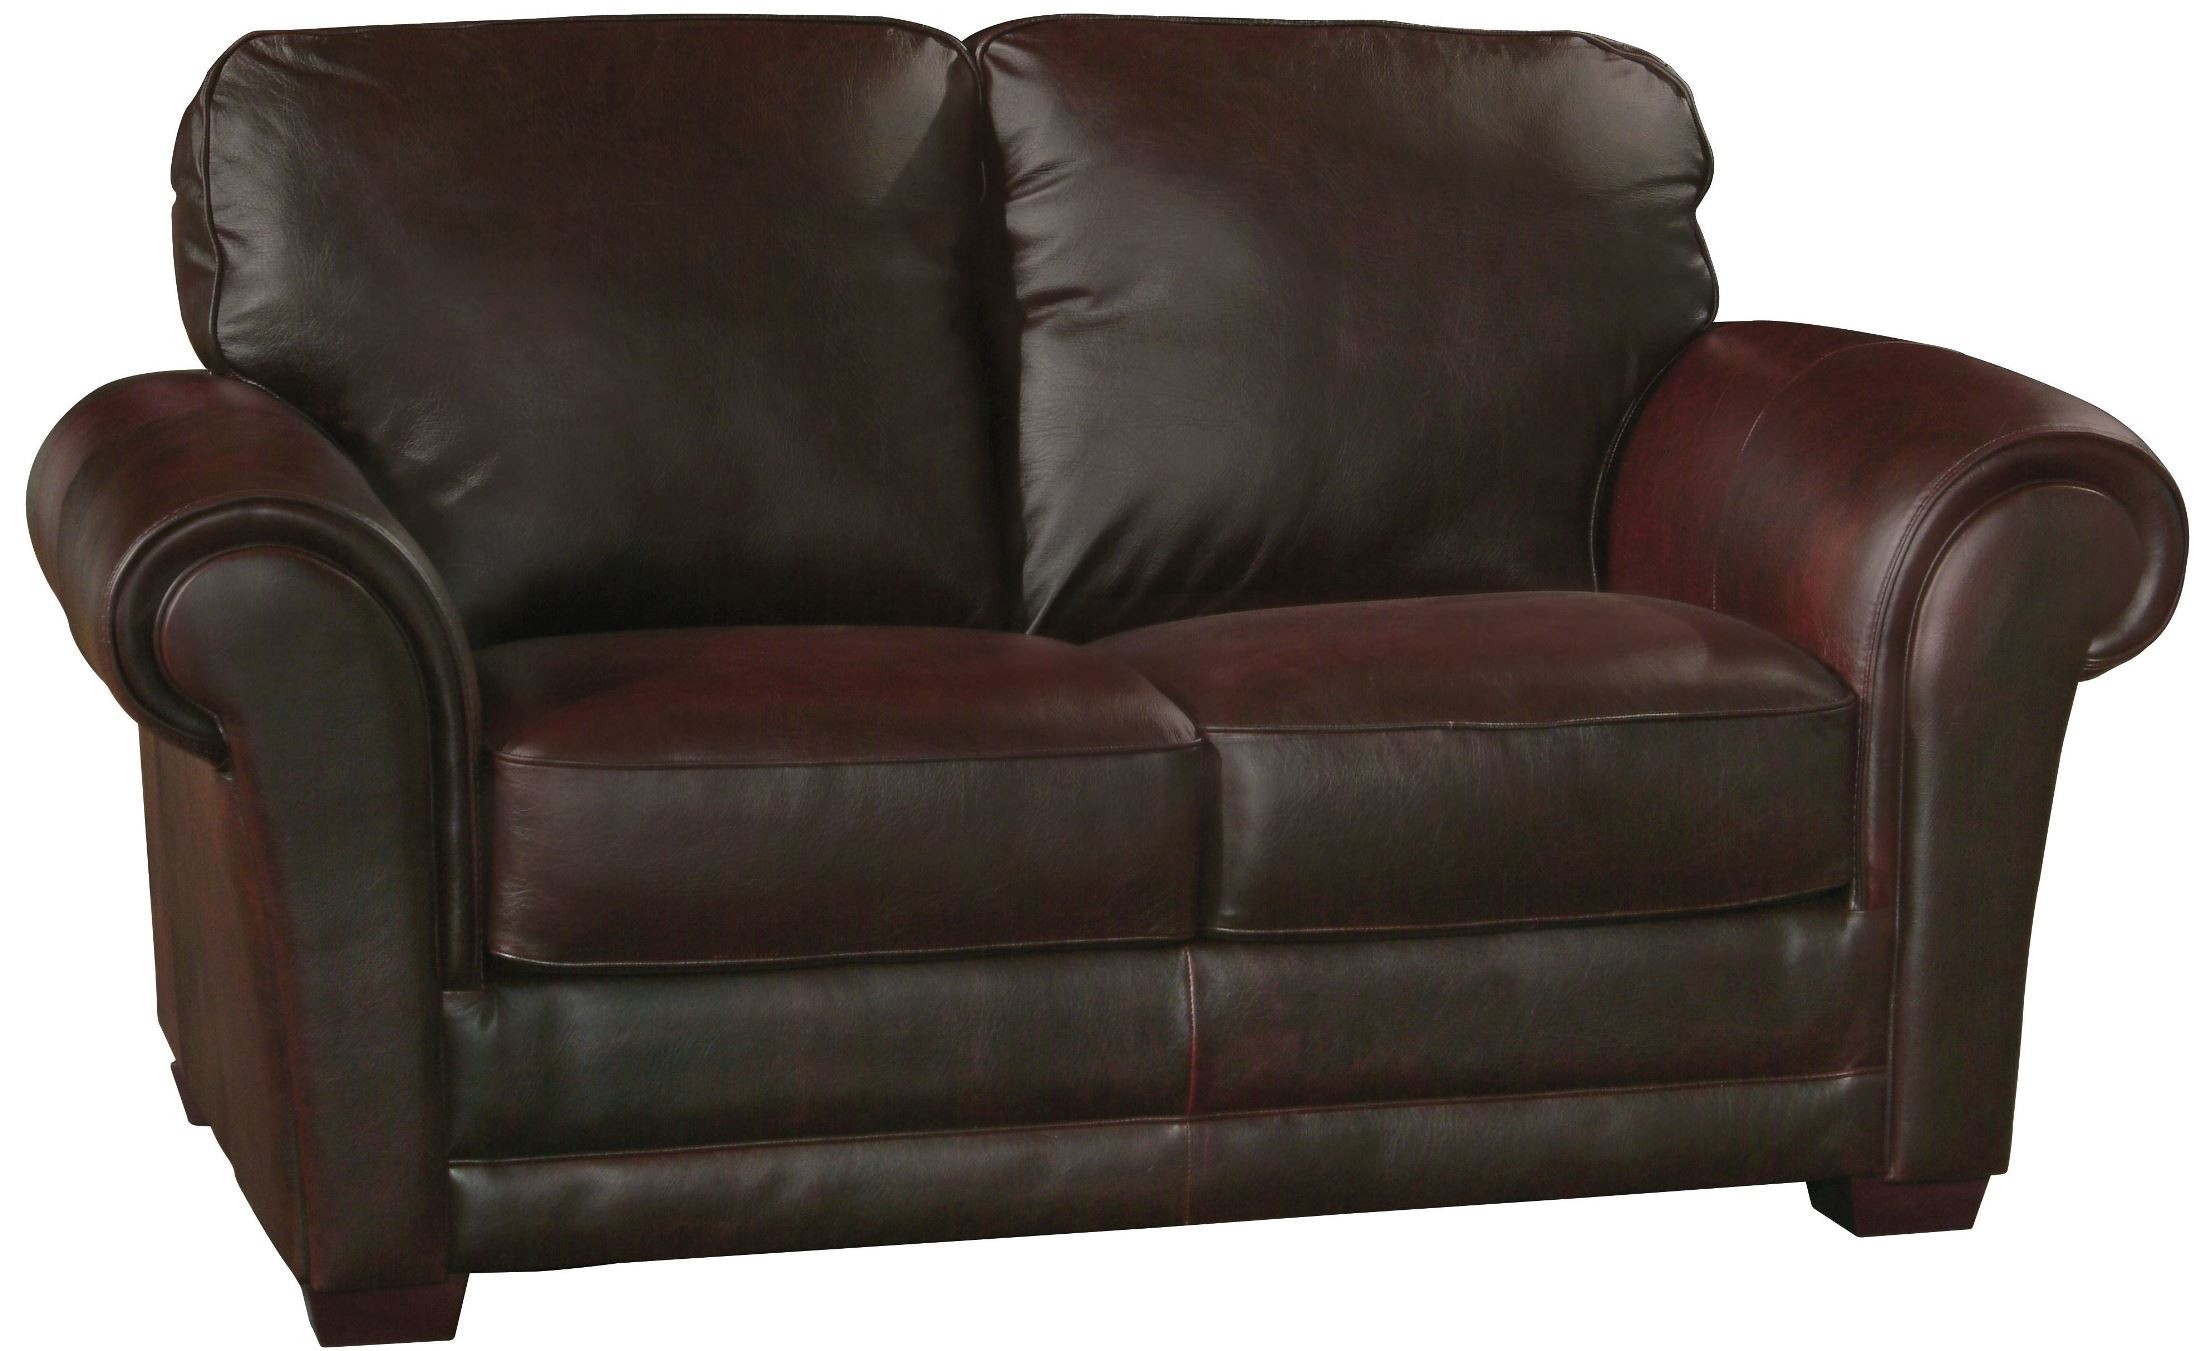 Mark Italian Leather Loveseat From Luke Leather Coleman Furniture